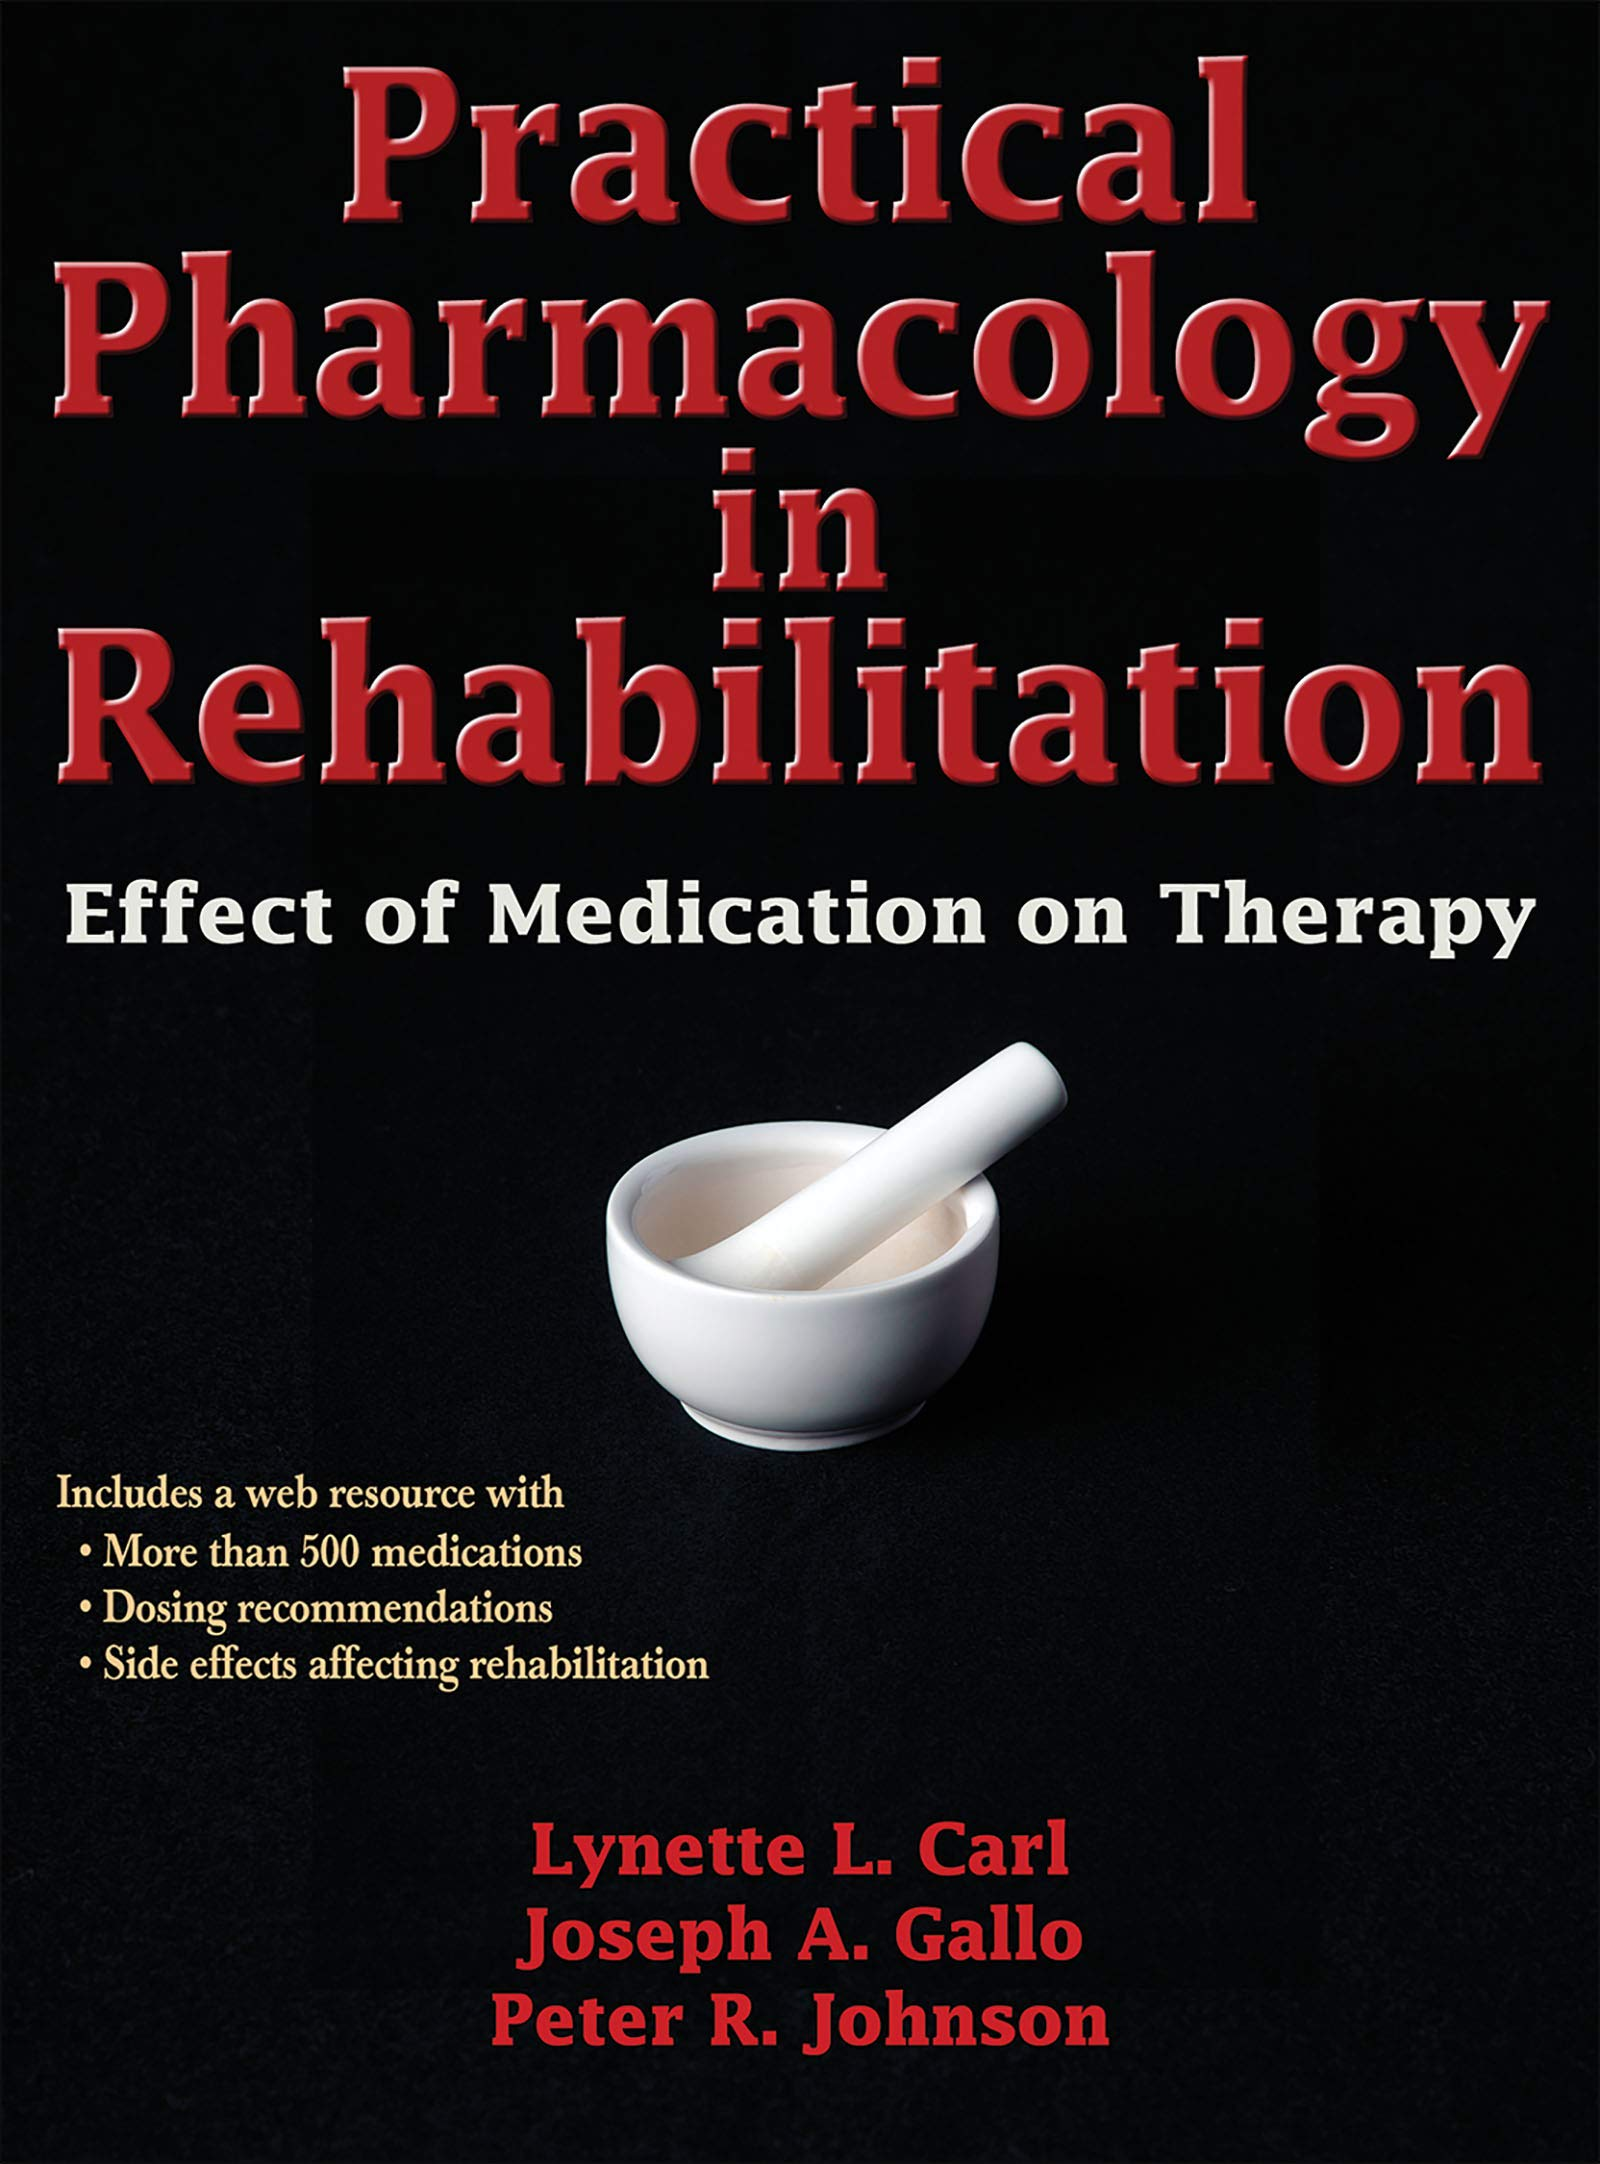 Image OfPractical Pharmacology In Rehabilitation: Effect Of Medication On Therapy